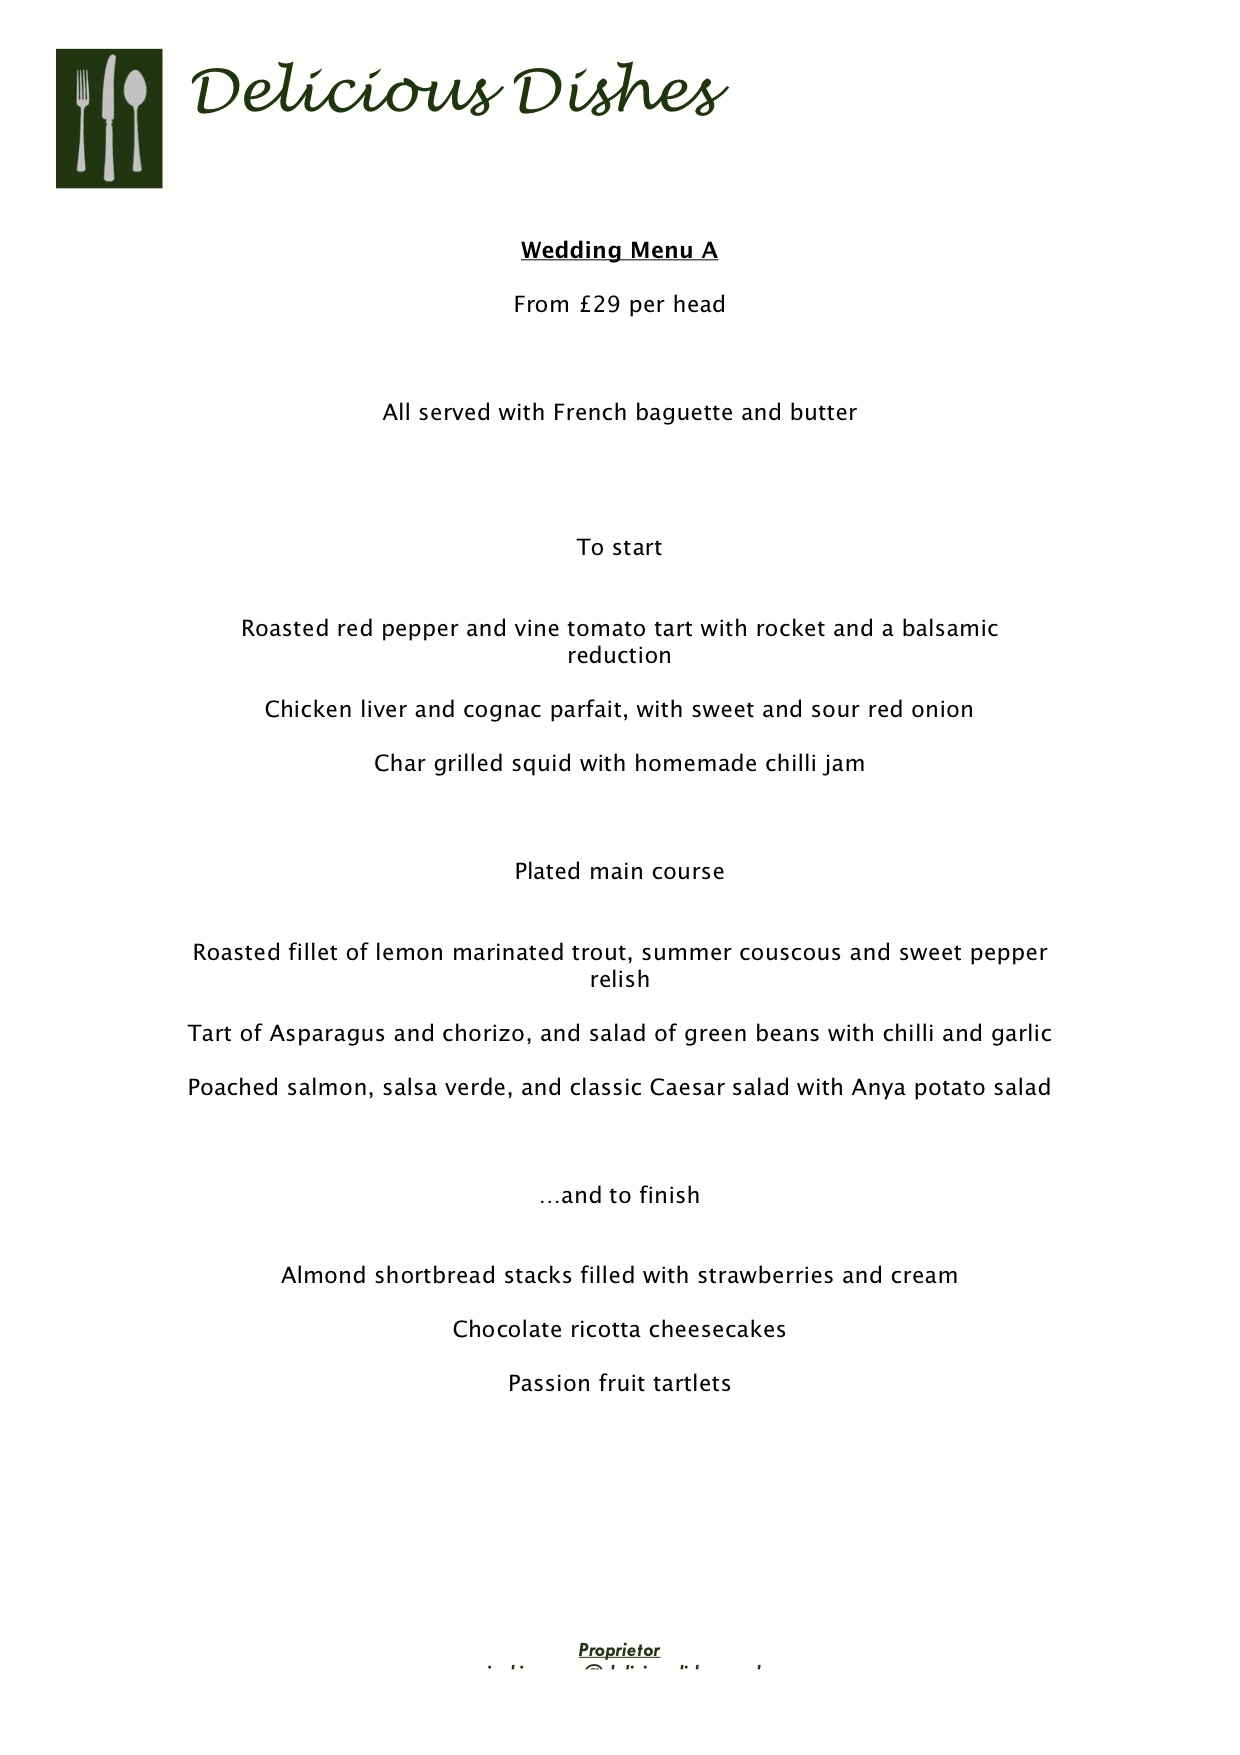 wedding-menu-A-From-£29.00-per-head-1